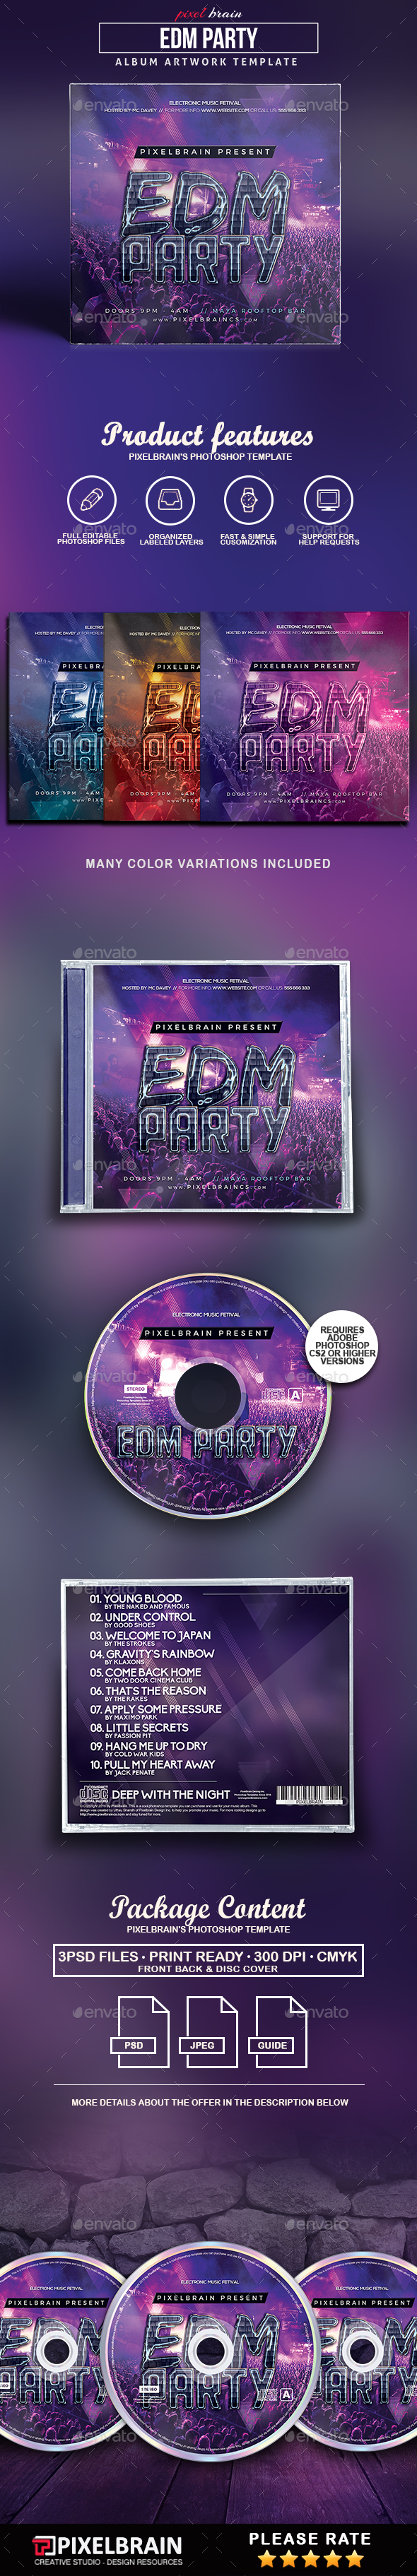 EDM Party CD Cover Artwork - CD & DVD Artwork Print Templates